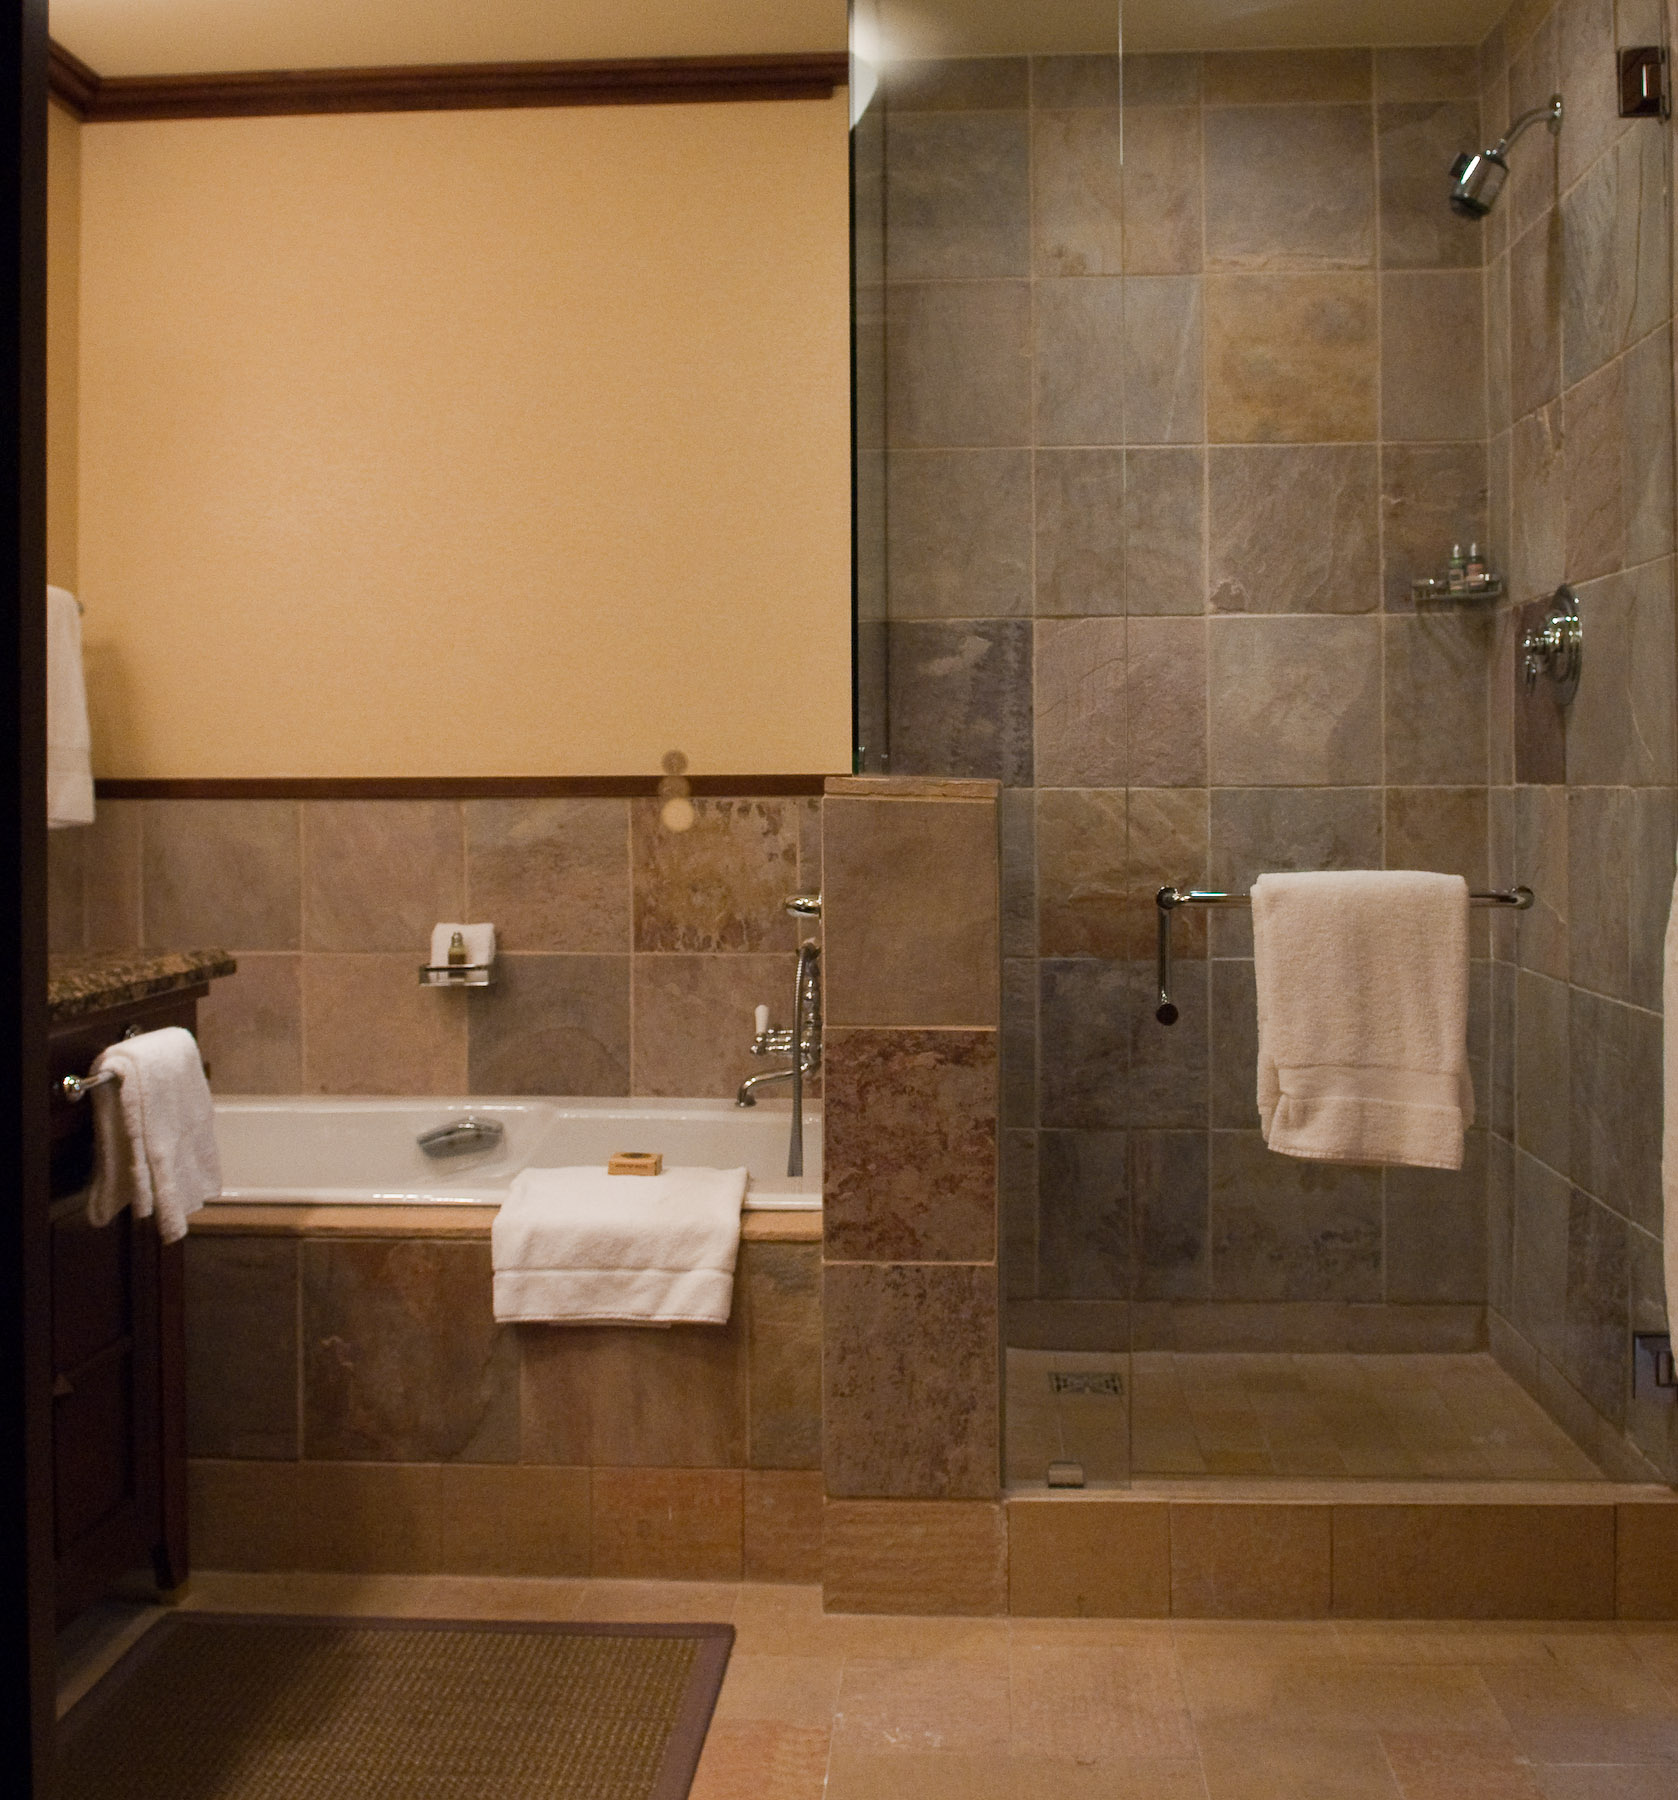 Jeffrey friedl 39 s blog deluxe executive suite at the four seasons whistler Bathroom remodel with walk in tub